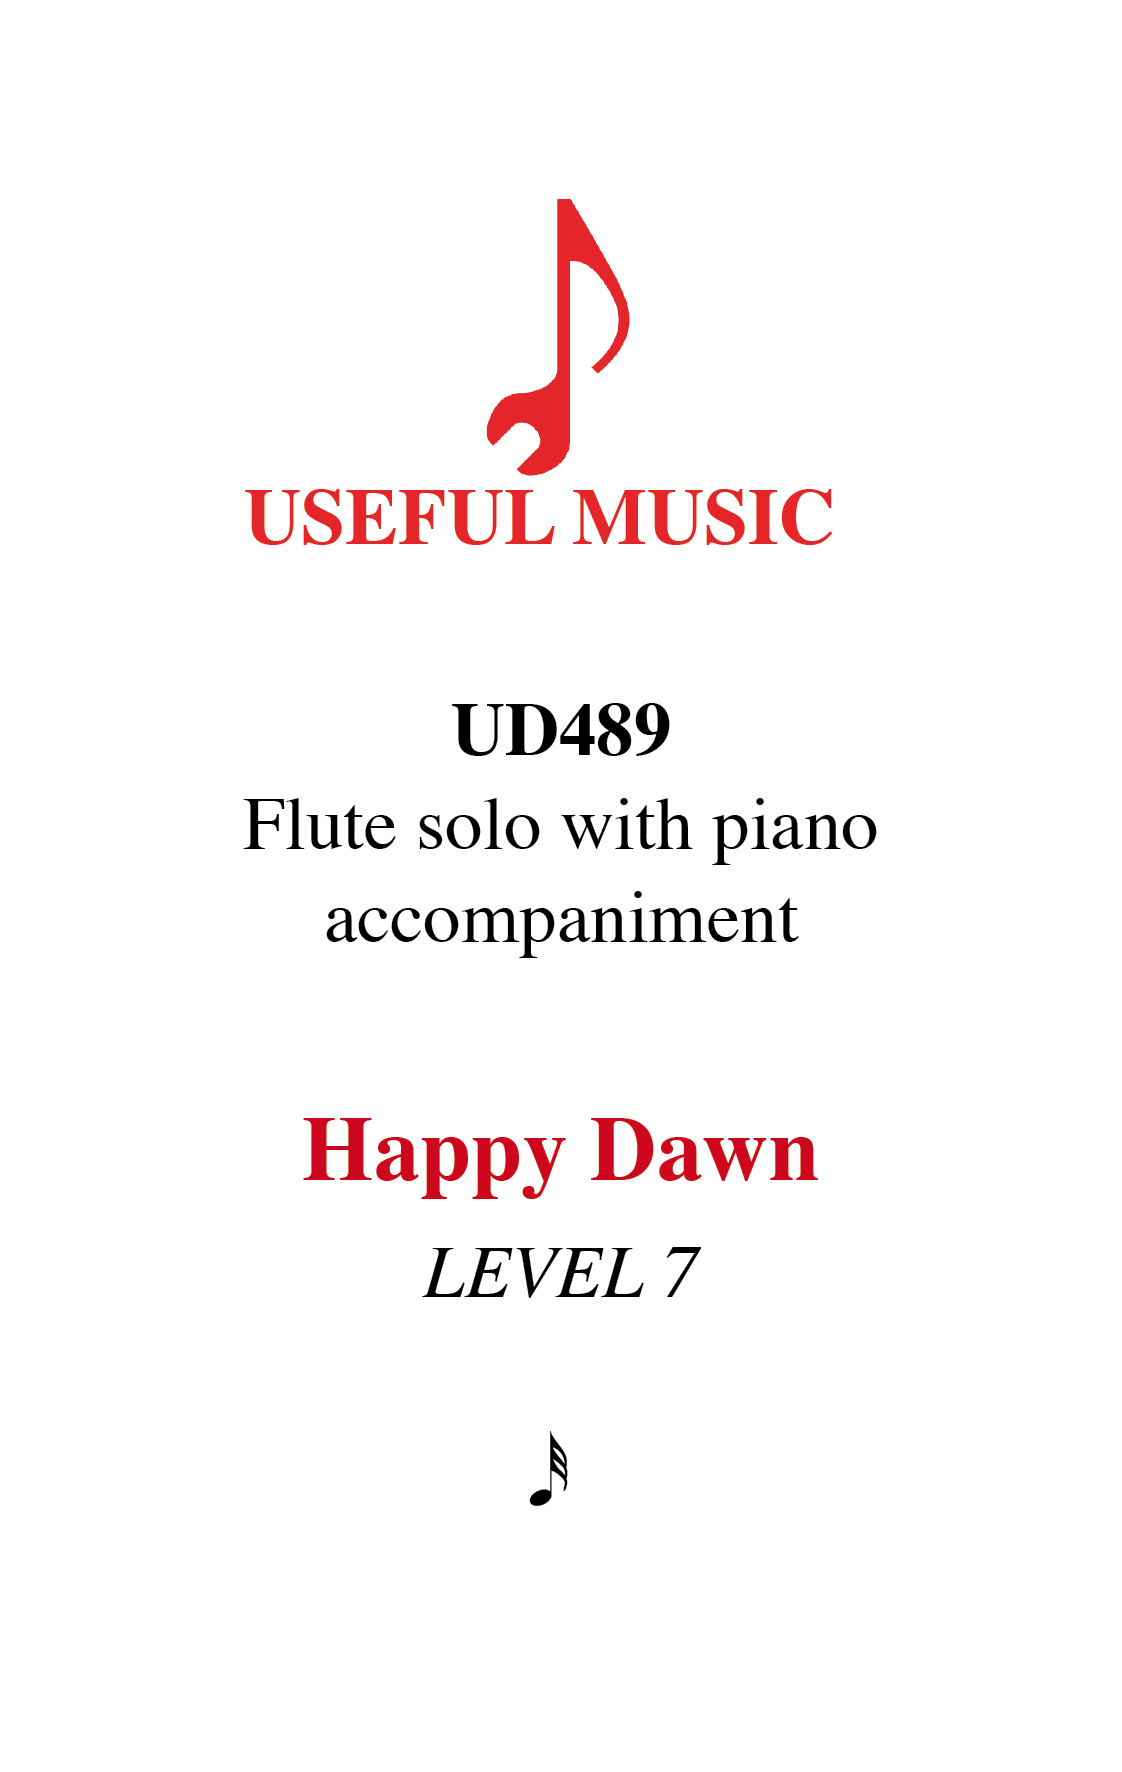 Happy Dawn - flute with piano accompaniment